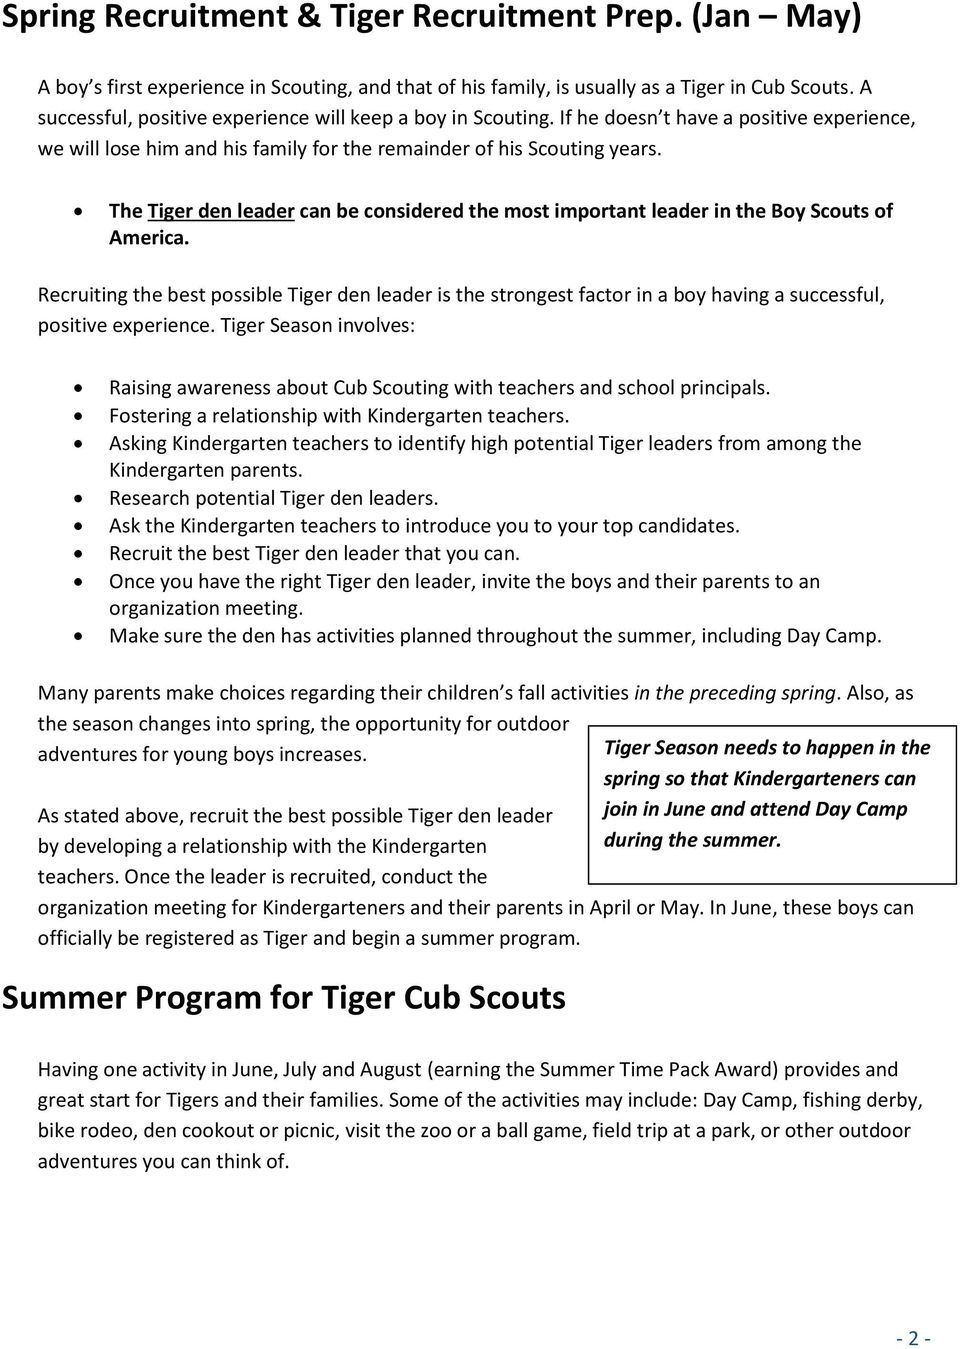 The Tiger den leader can be considered the most important leader in the Boy Scouts of America.